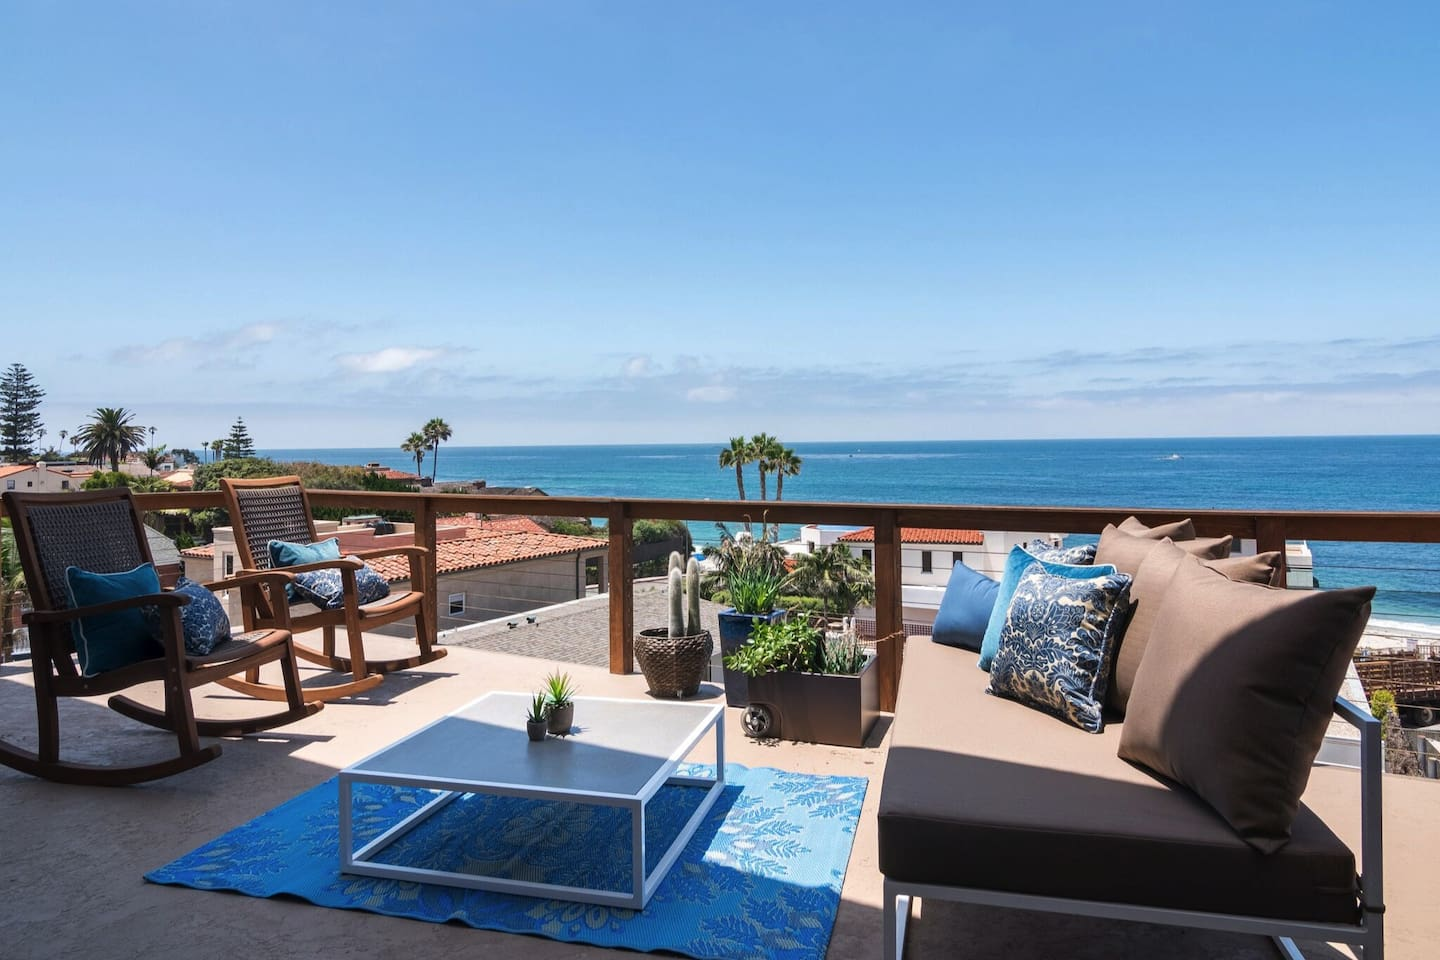 Relax on the deck and enjoy the beautiful Ocean View